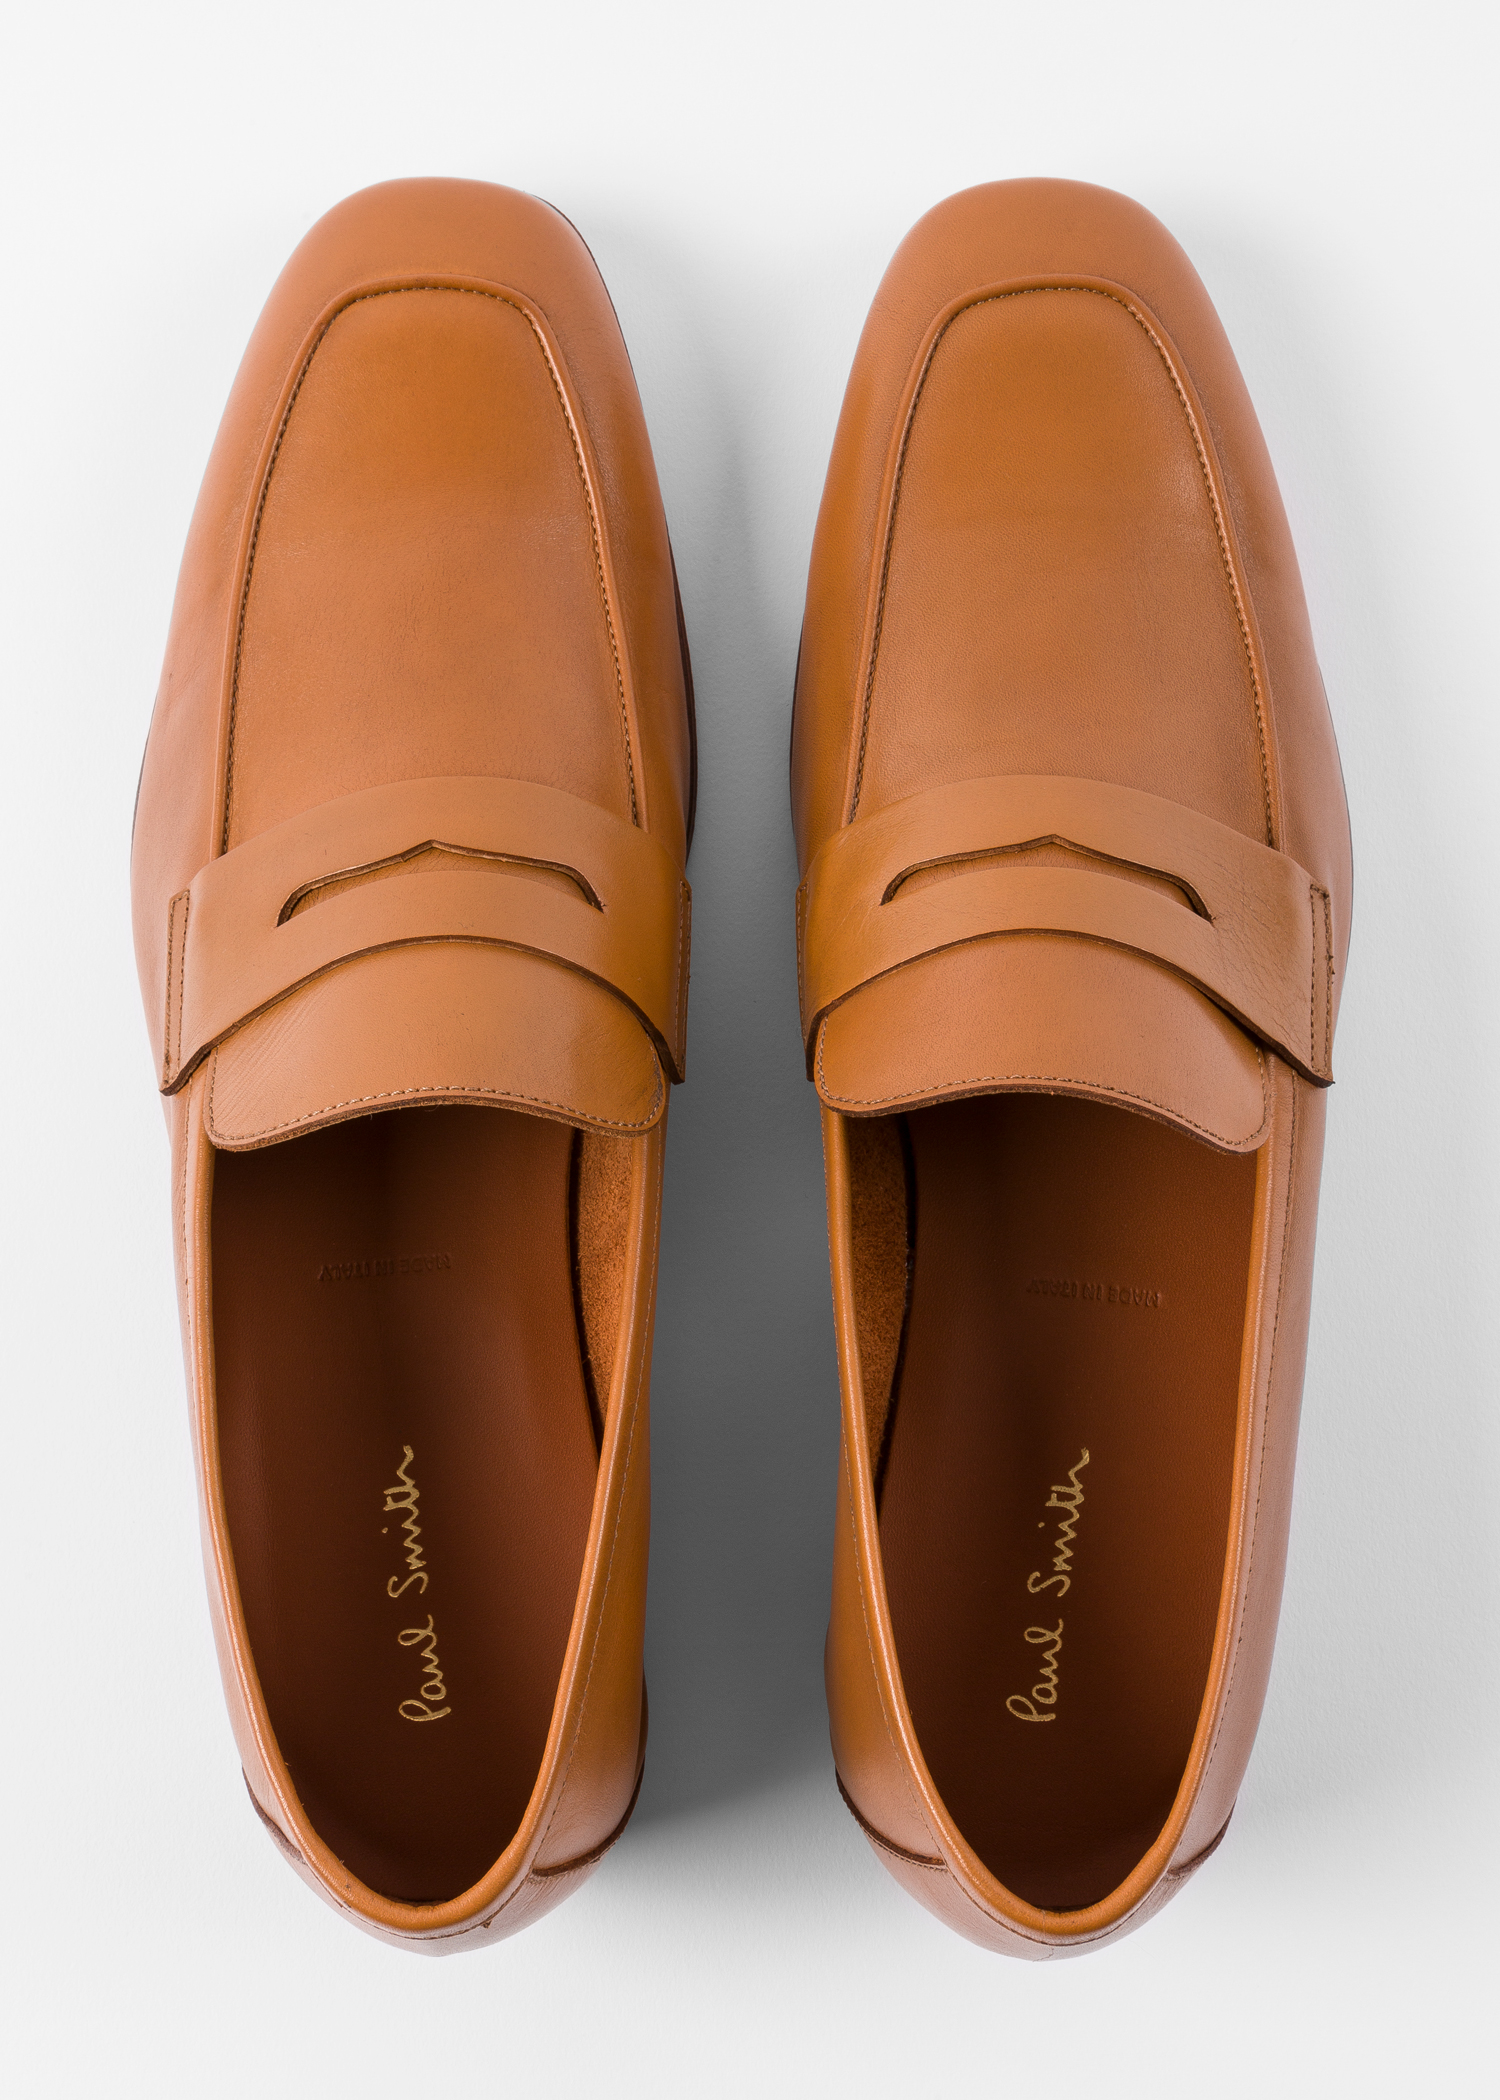 b09eb63ff54 Men s Tan Smooth Leather  Glynn  Penny Loafers - Paul Smith Asia